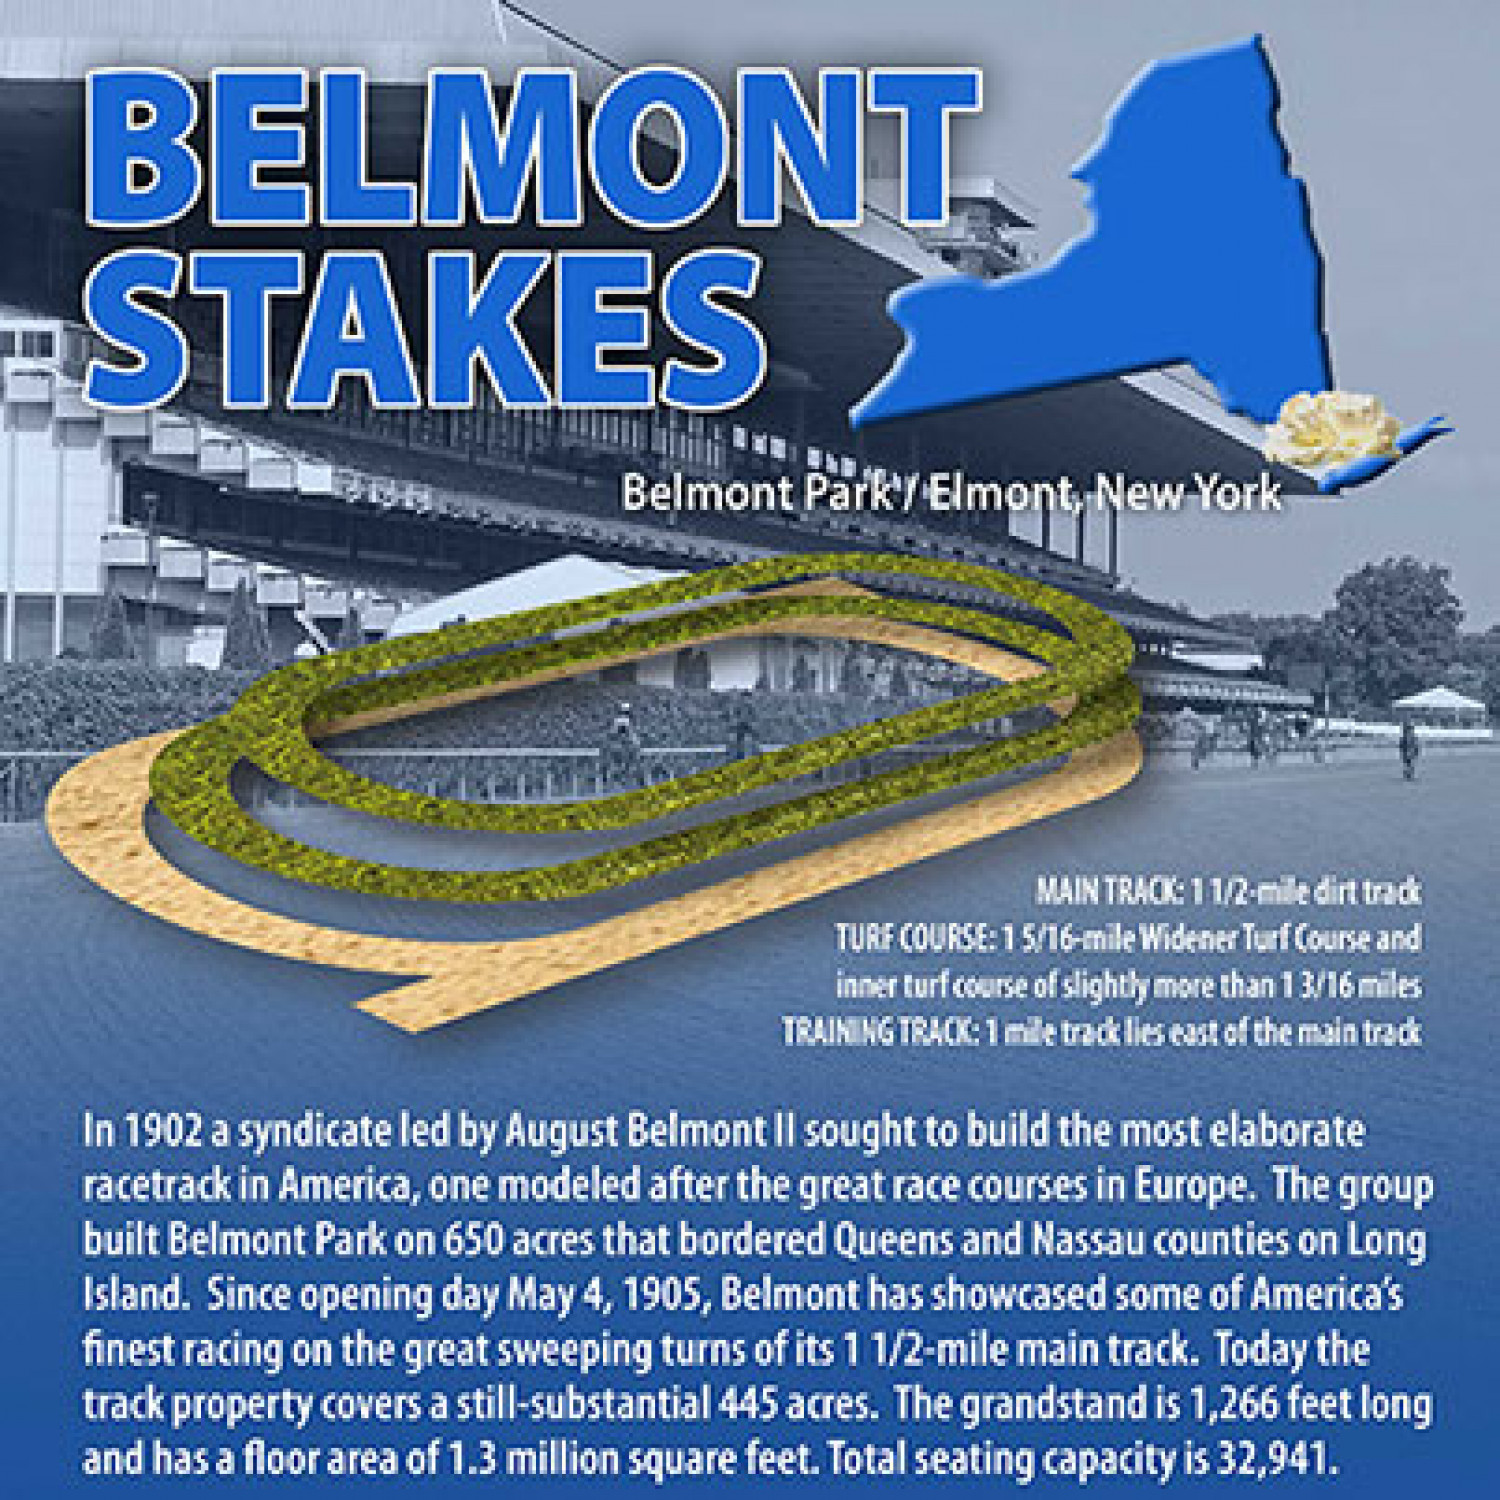 Belmont Stakes Infographic